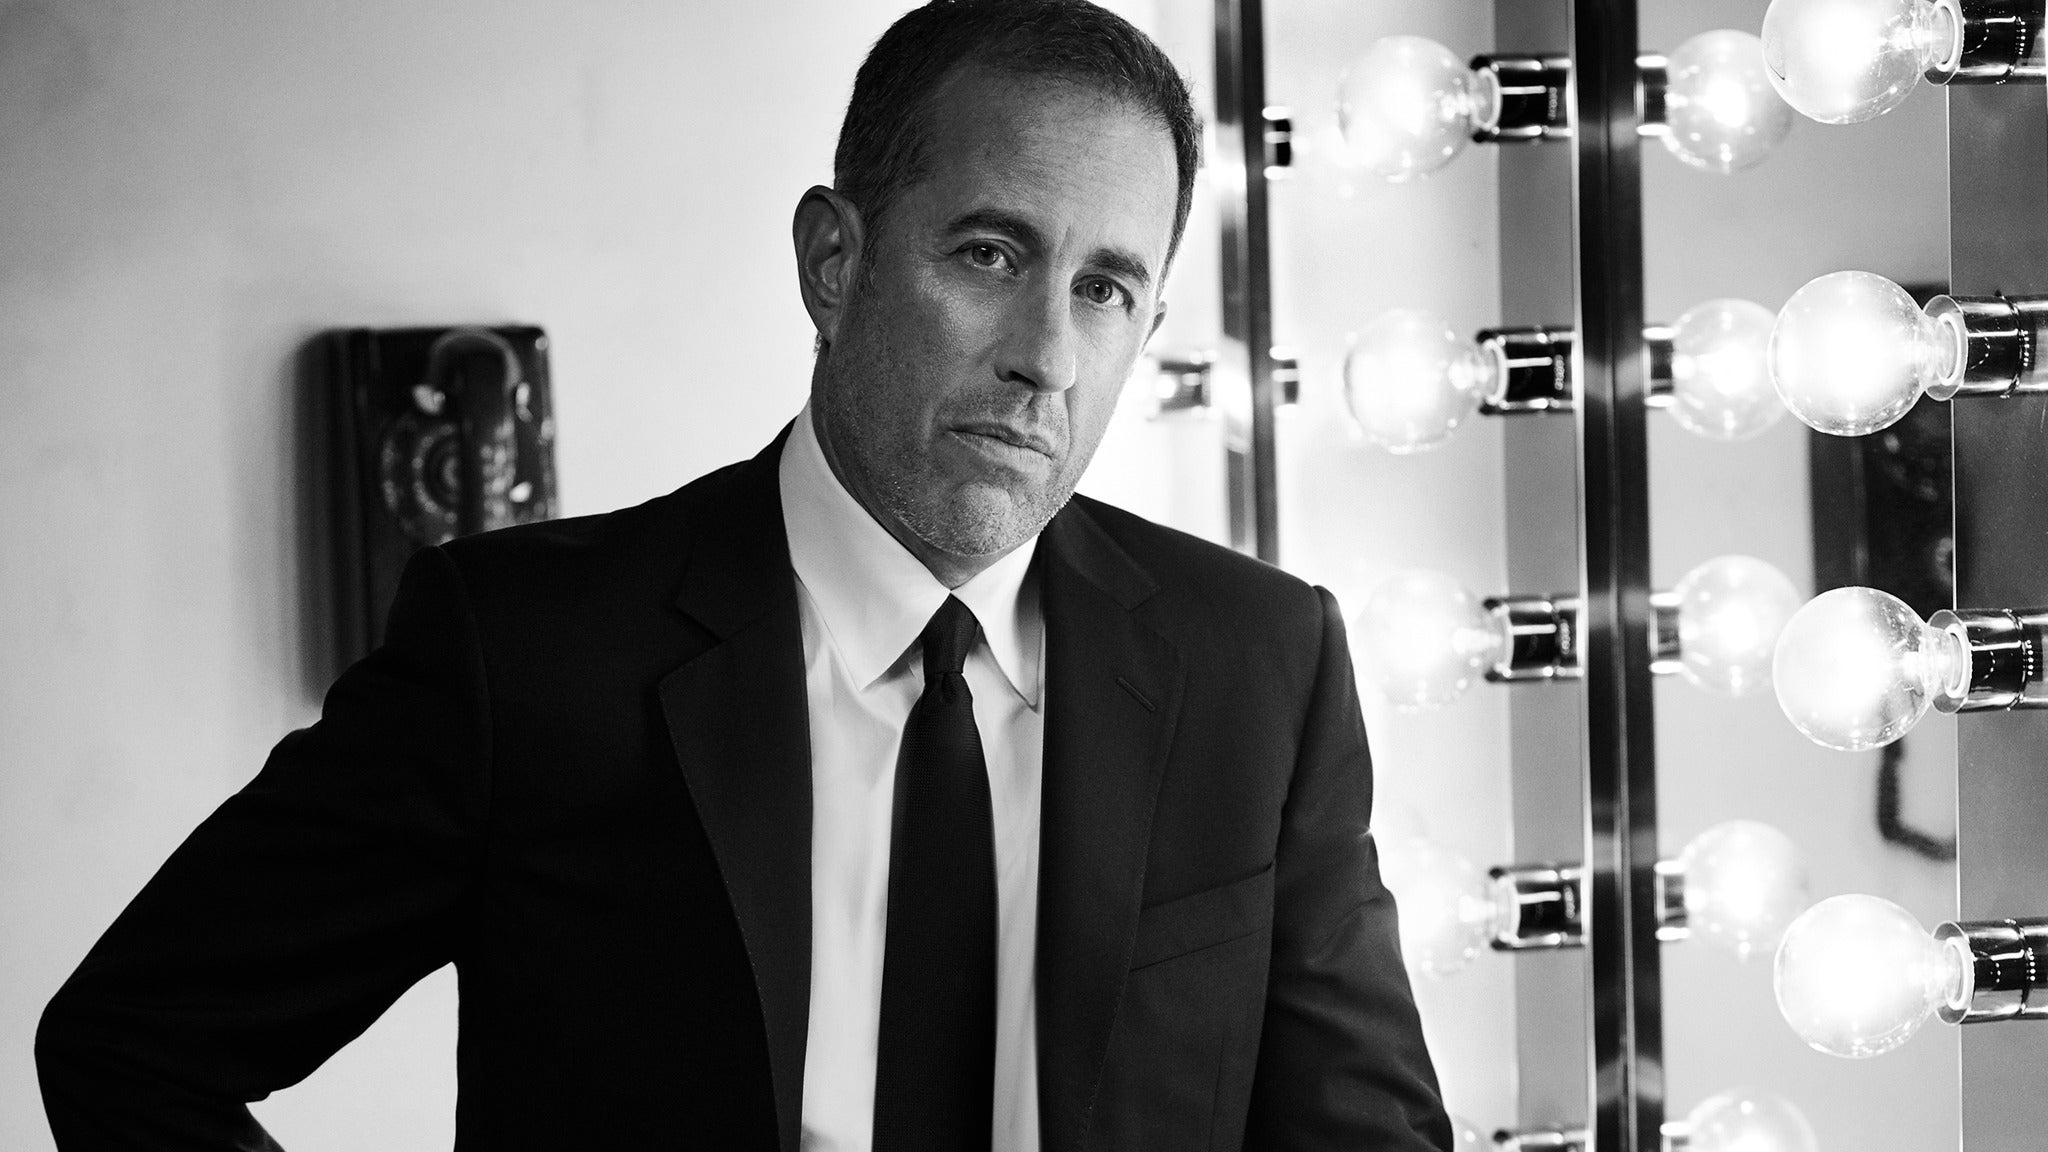 Jerry Seinfeld at Von Braun Center Concert Hall - Huntsville, AL 35801